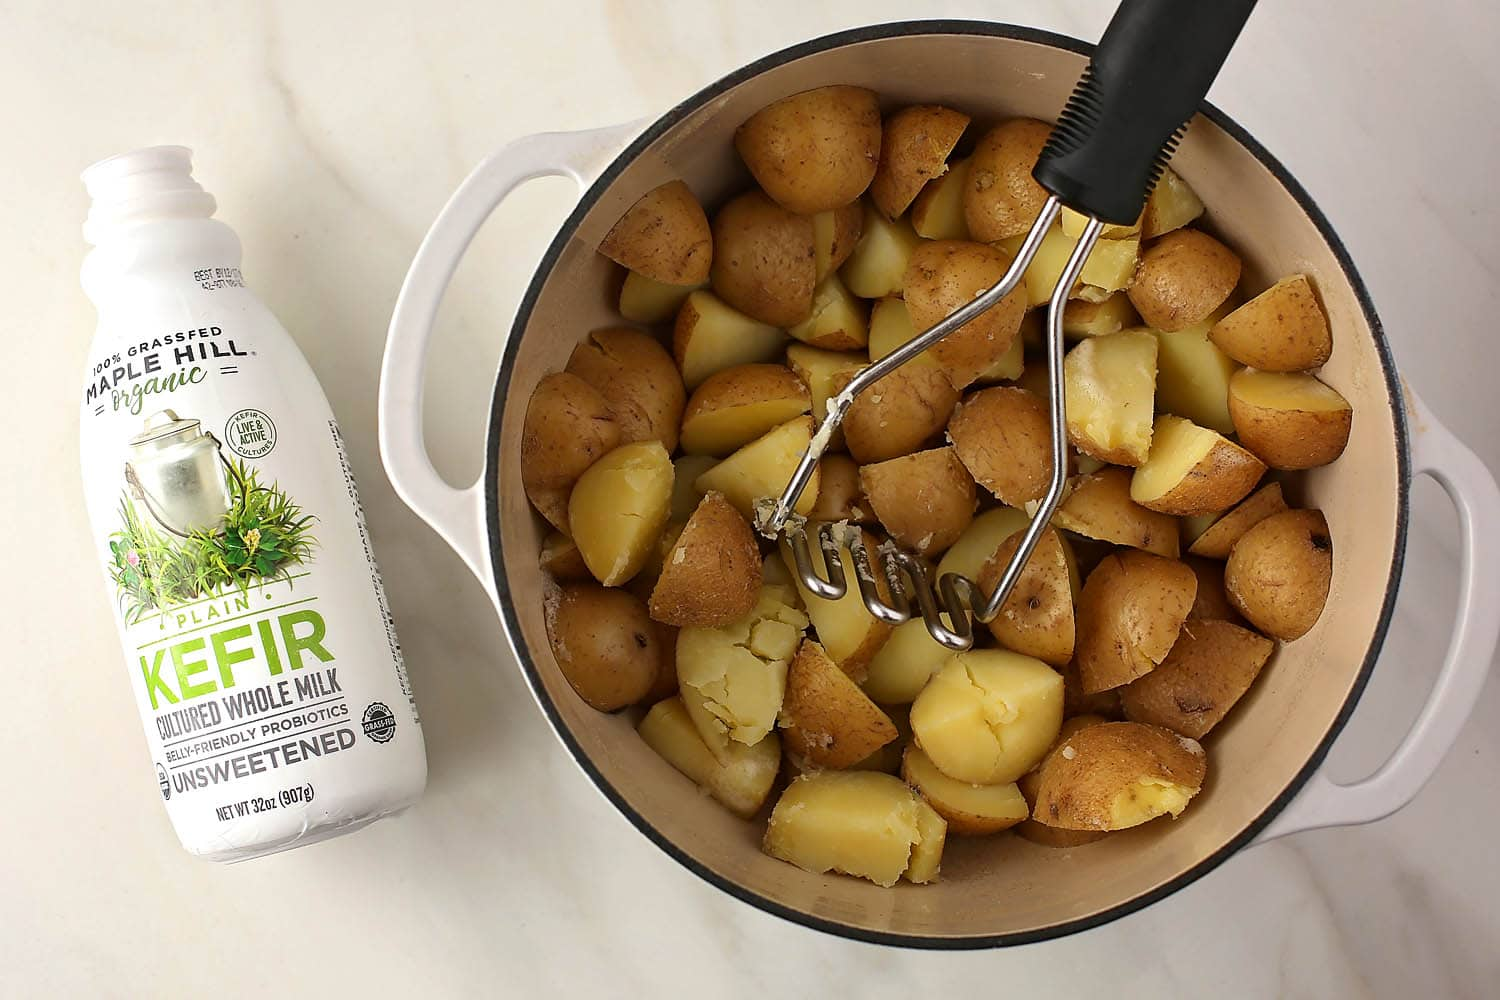 pot with boiled potatoes and kefir bottle next to it